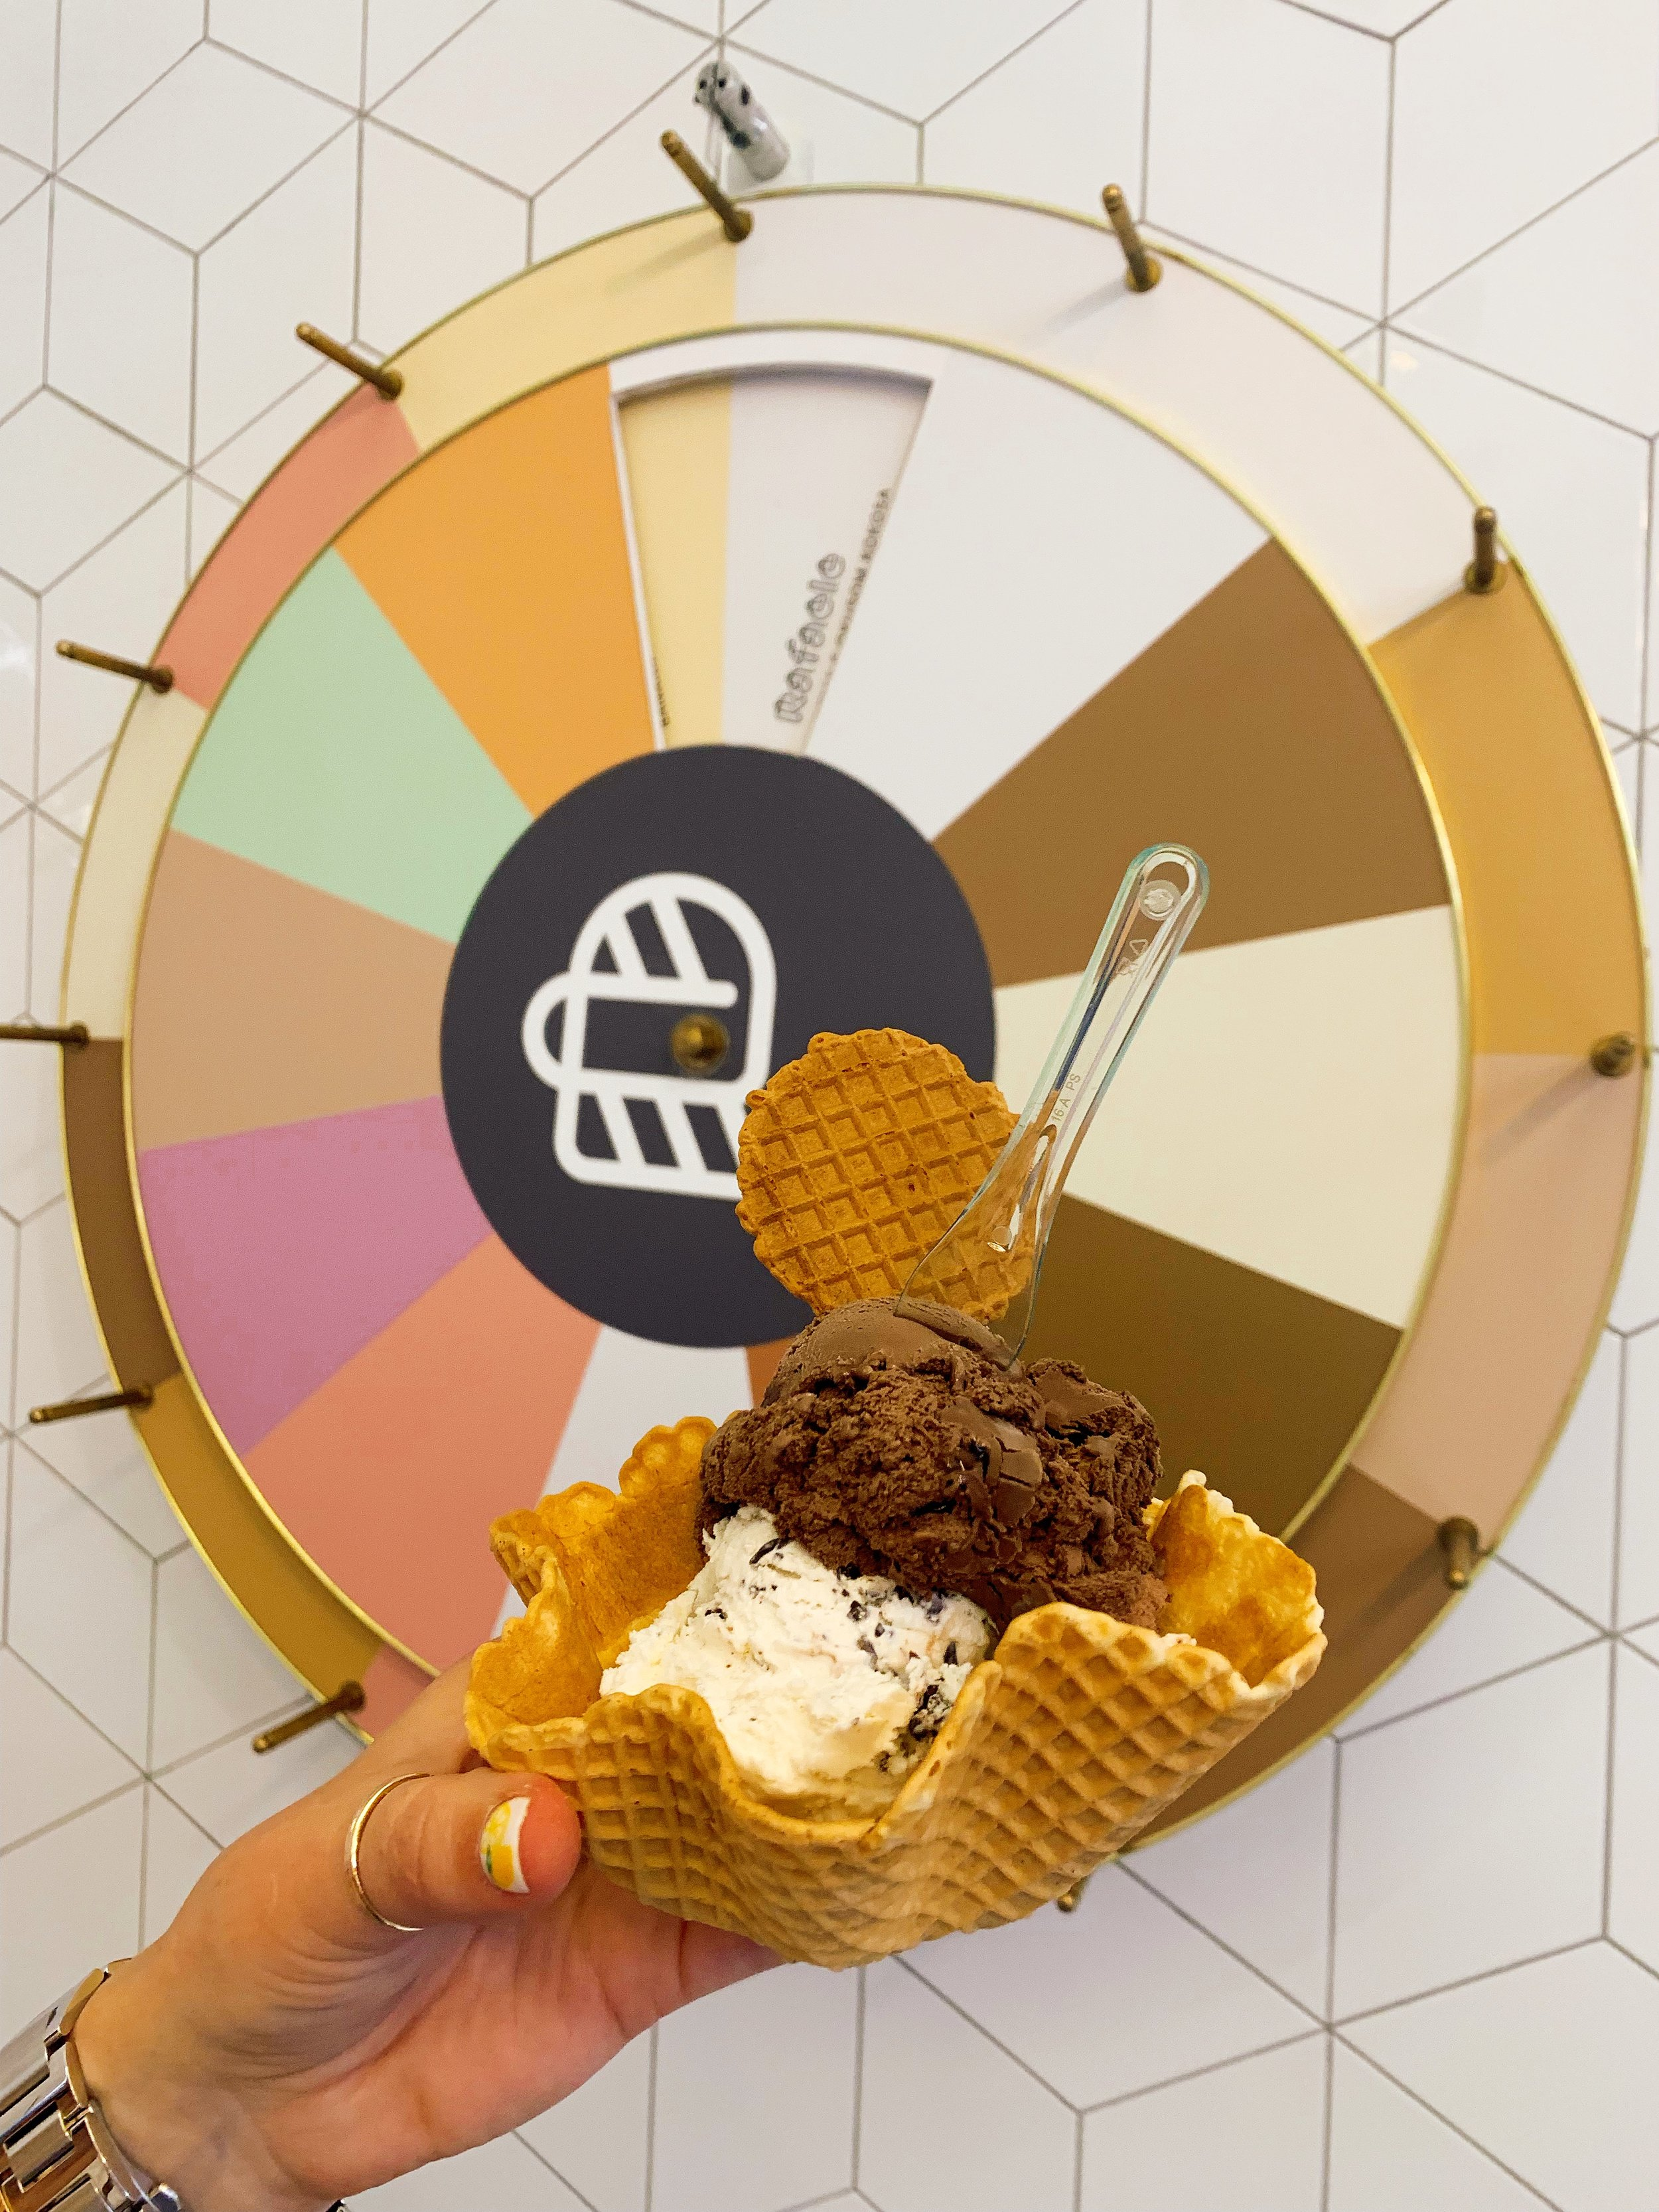 The Wheel Of Flavors